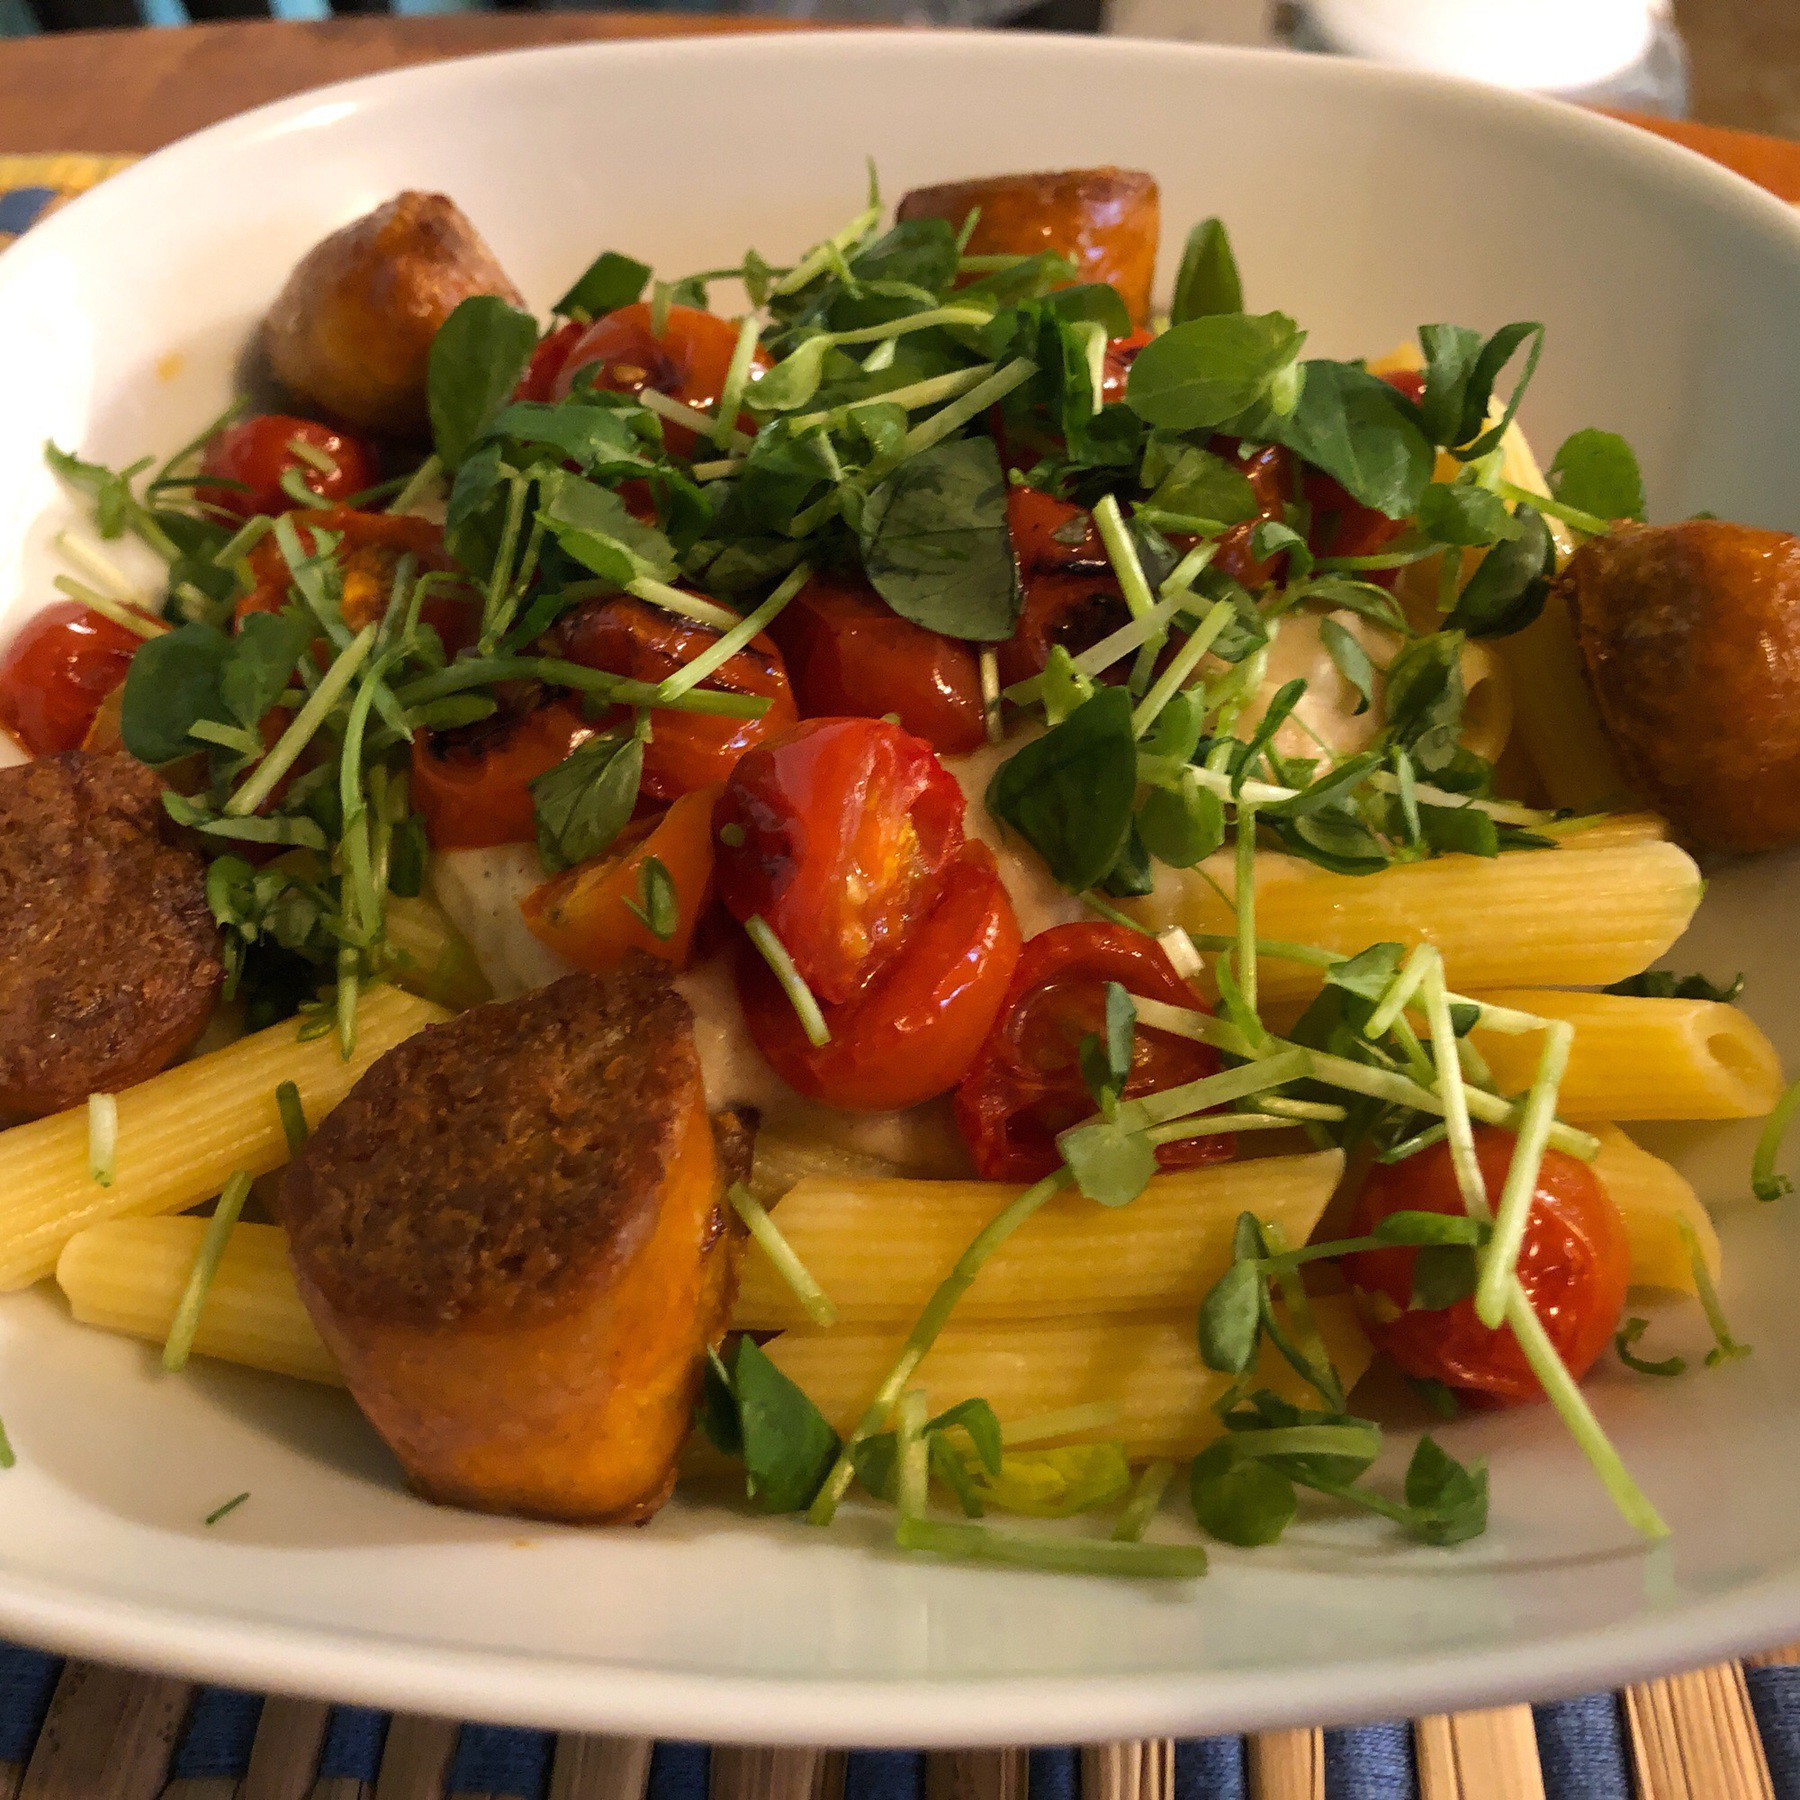 Pasta and veggie sausages in bowl.